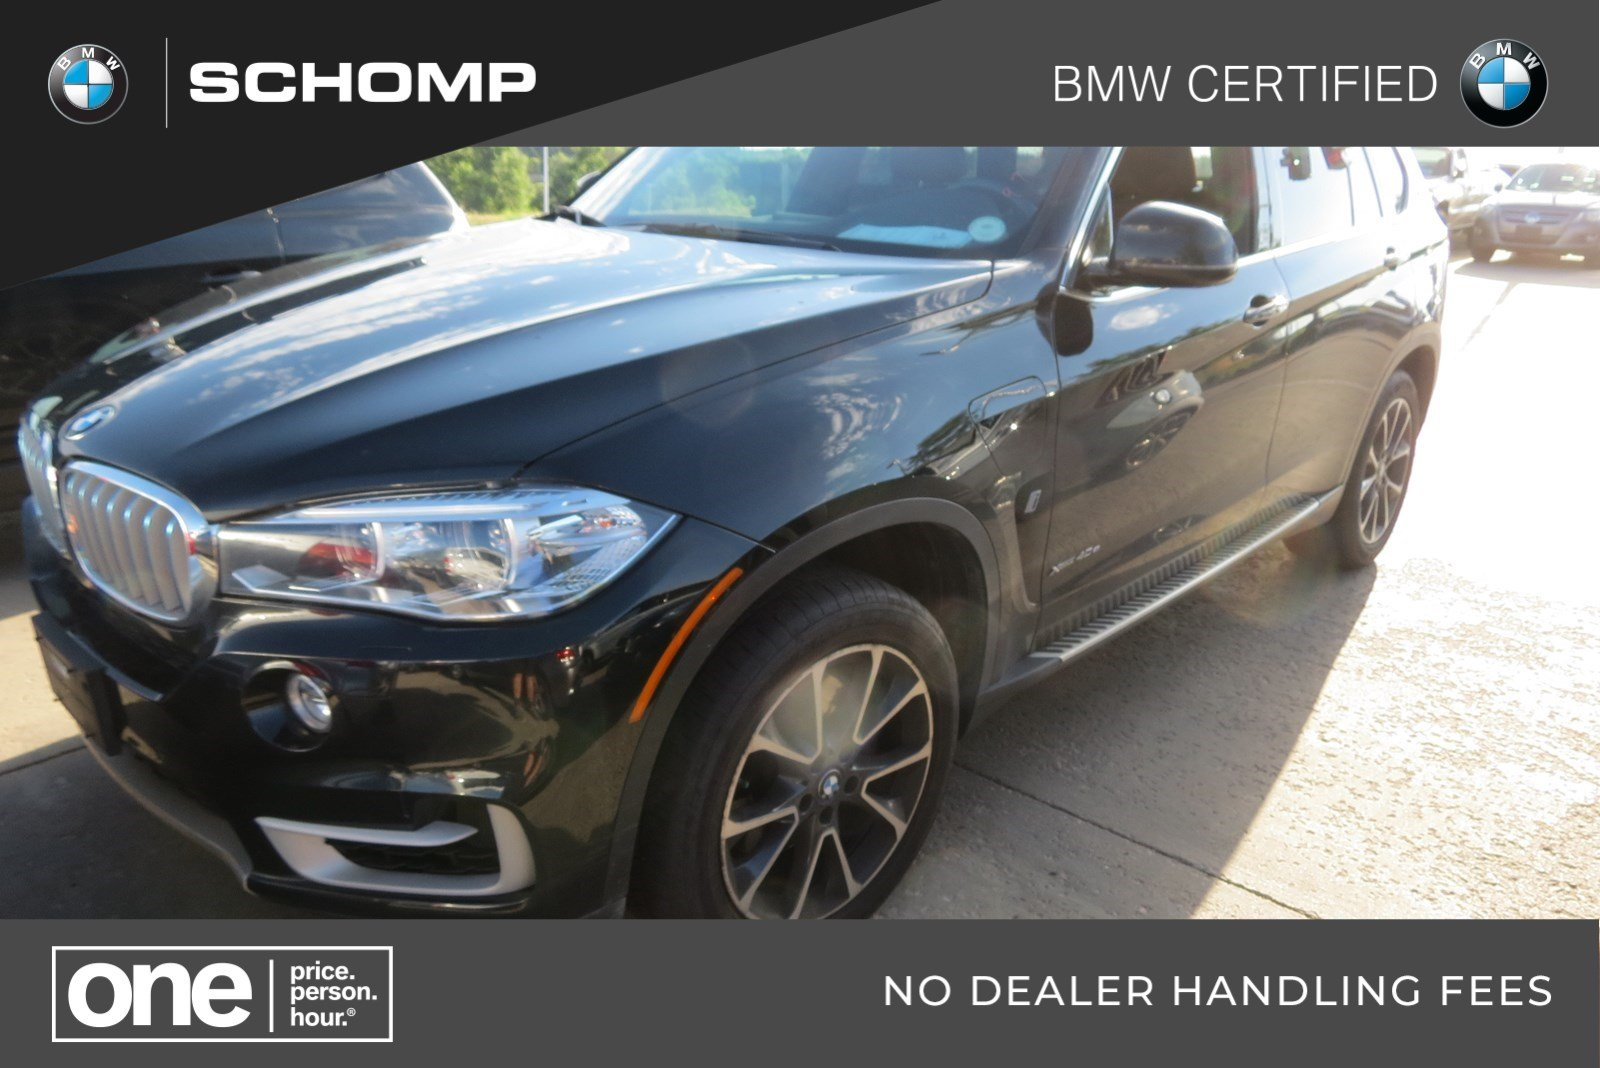 Bmw Certified Pre Owned >> Certified Pre Owned Bmw 2017 X5 Xdrive40e Iperformance Awd